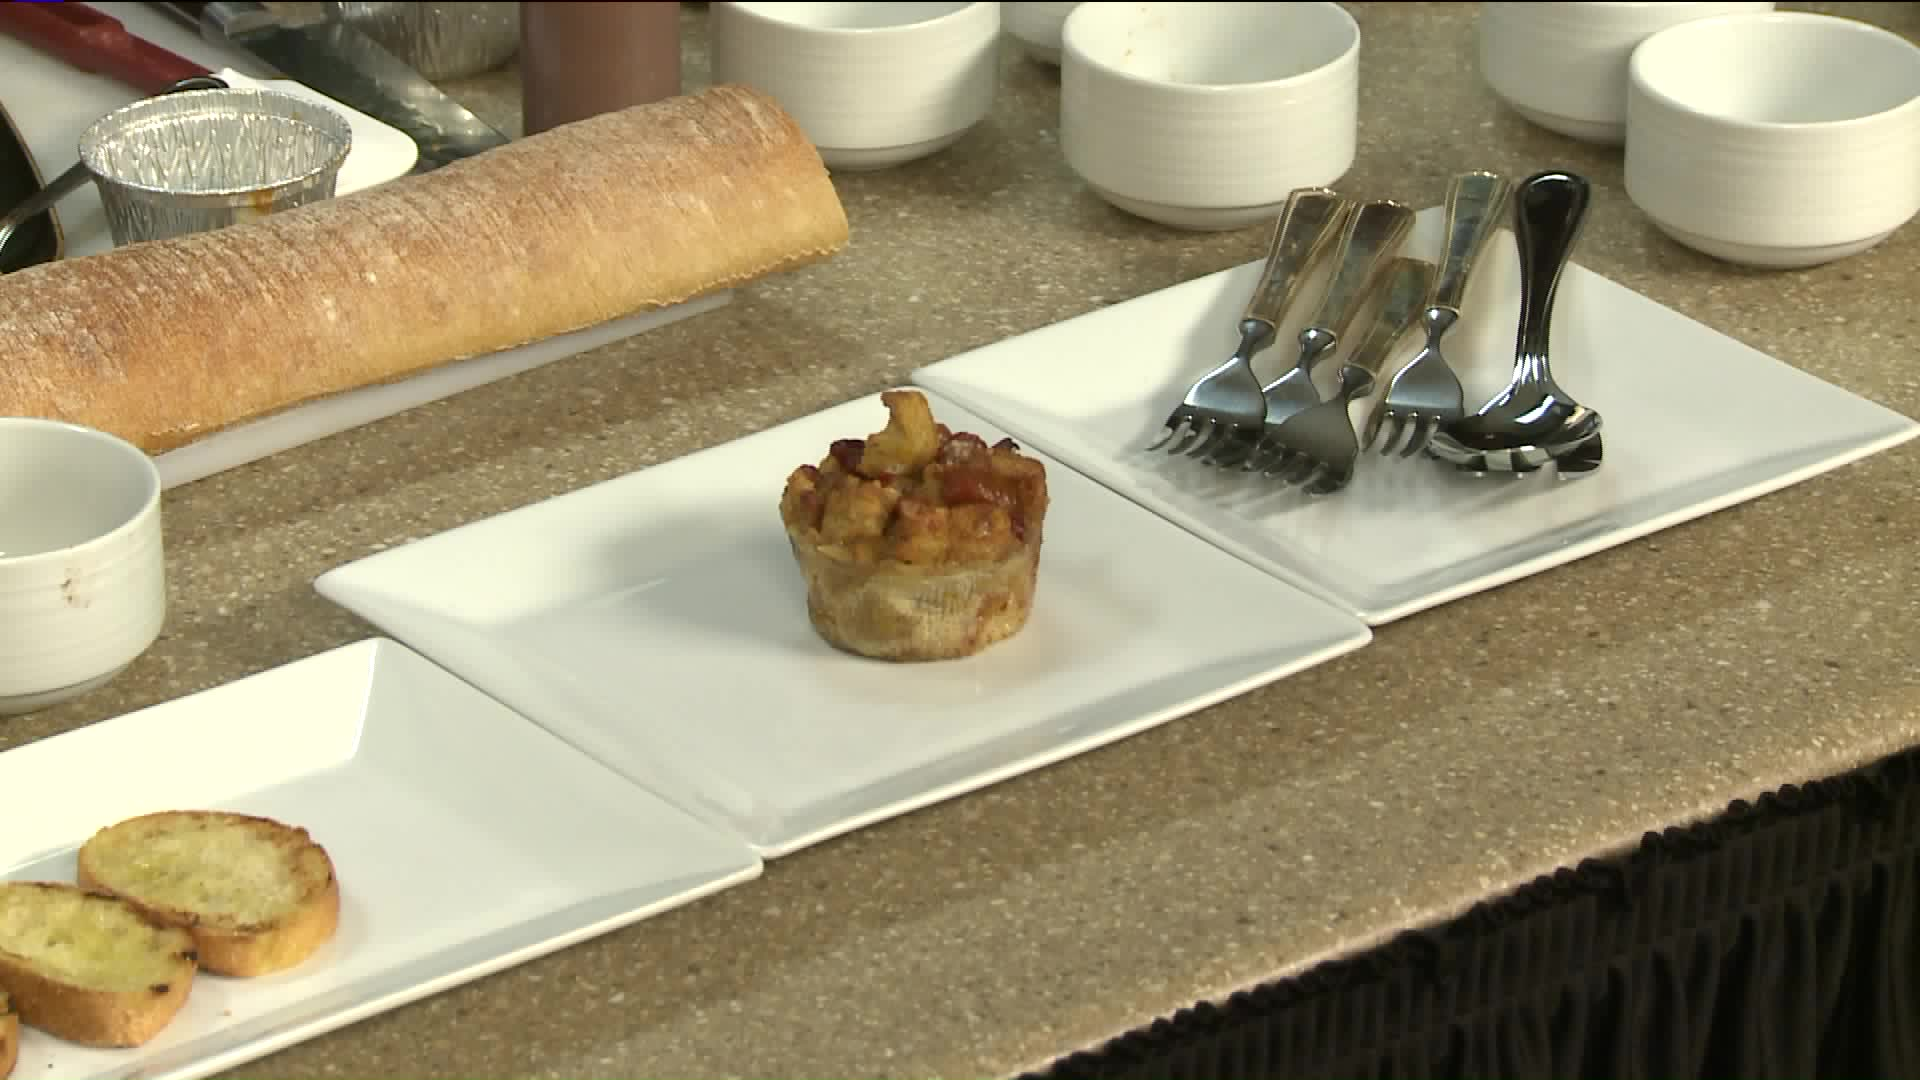 How To Make White Chocolate Bread Pudding